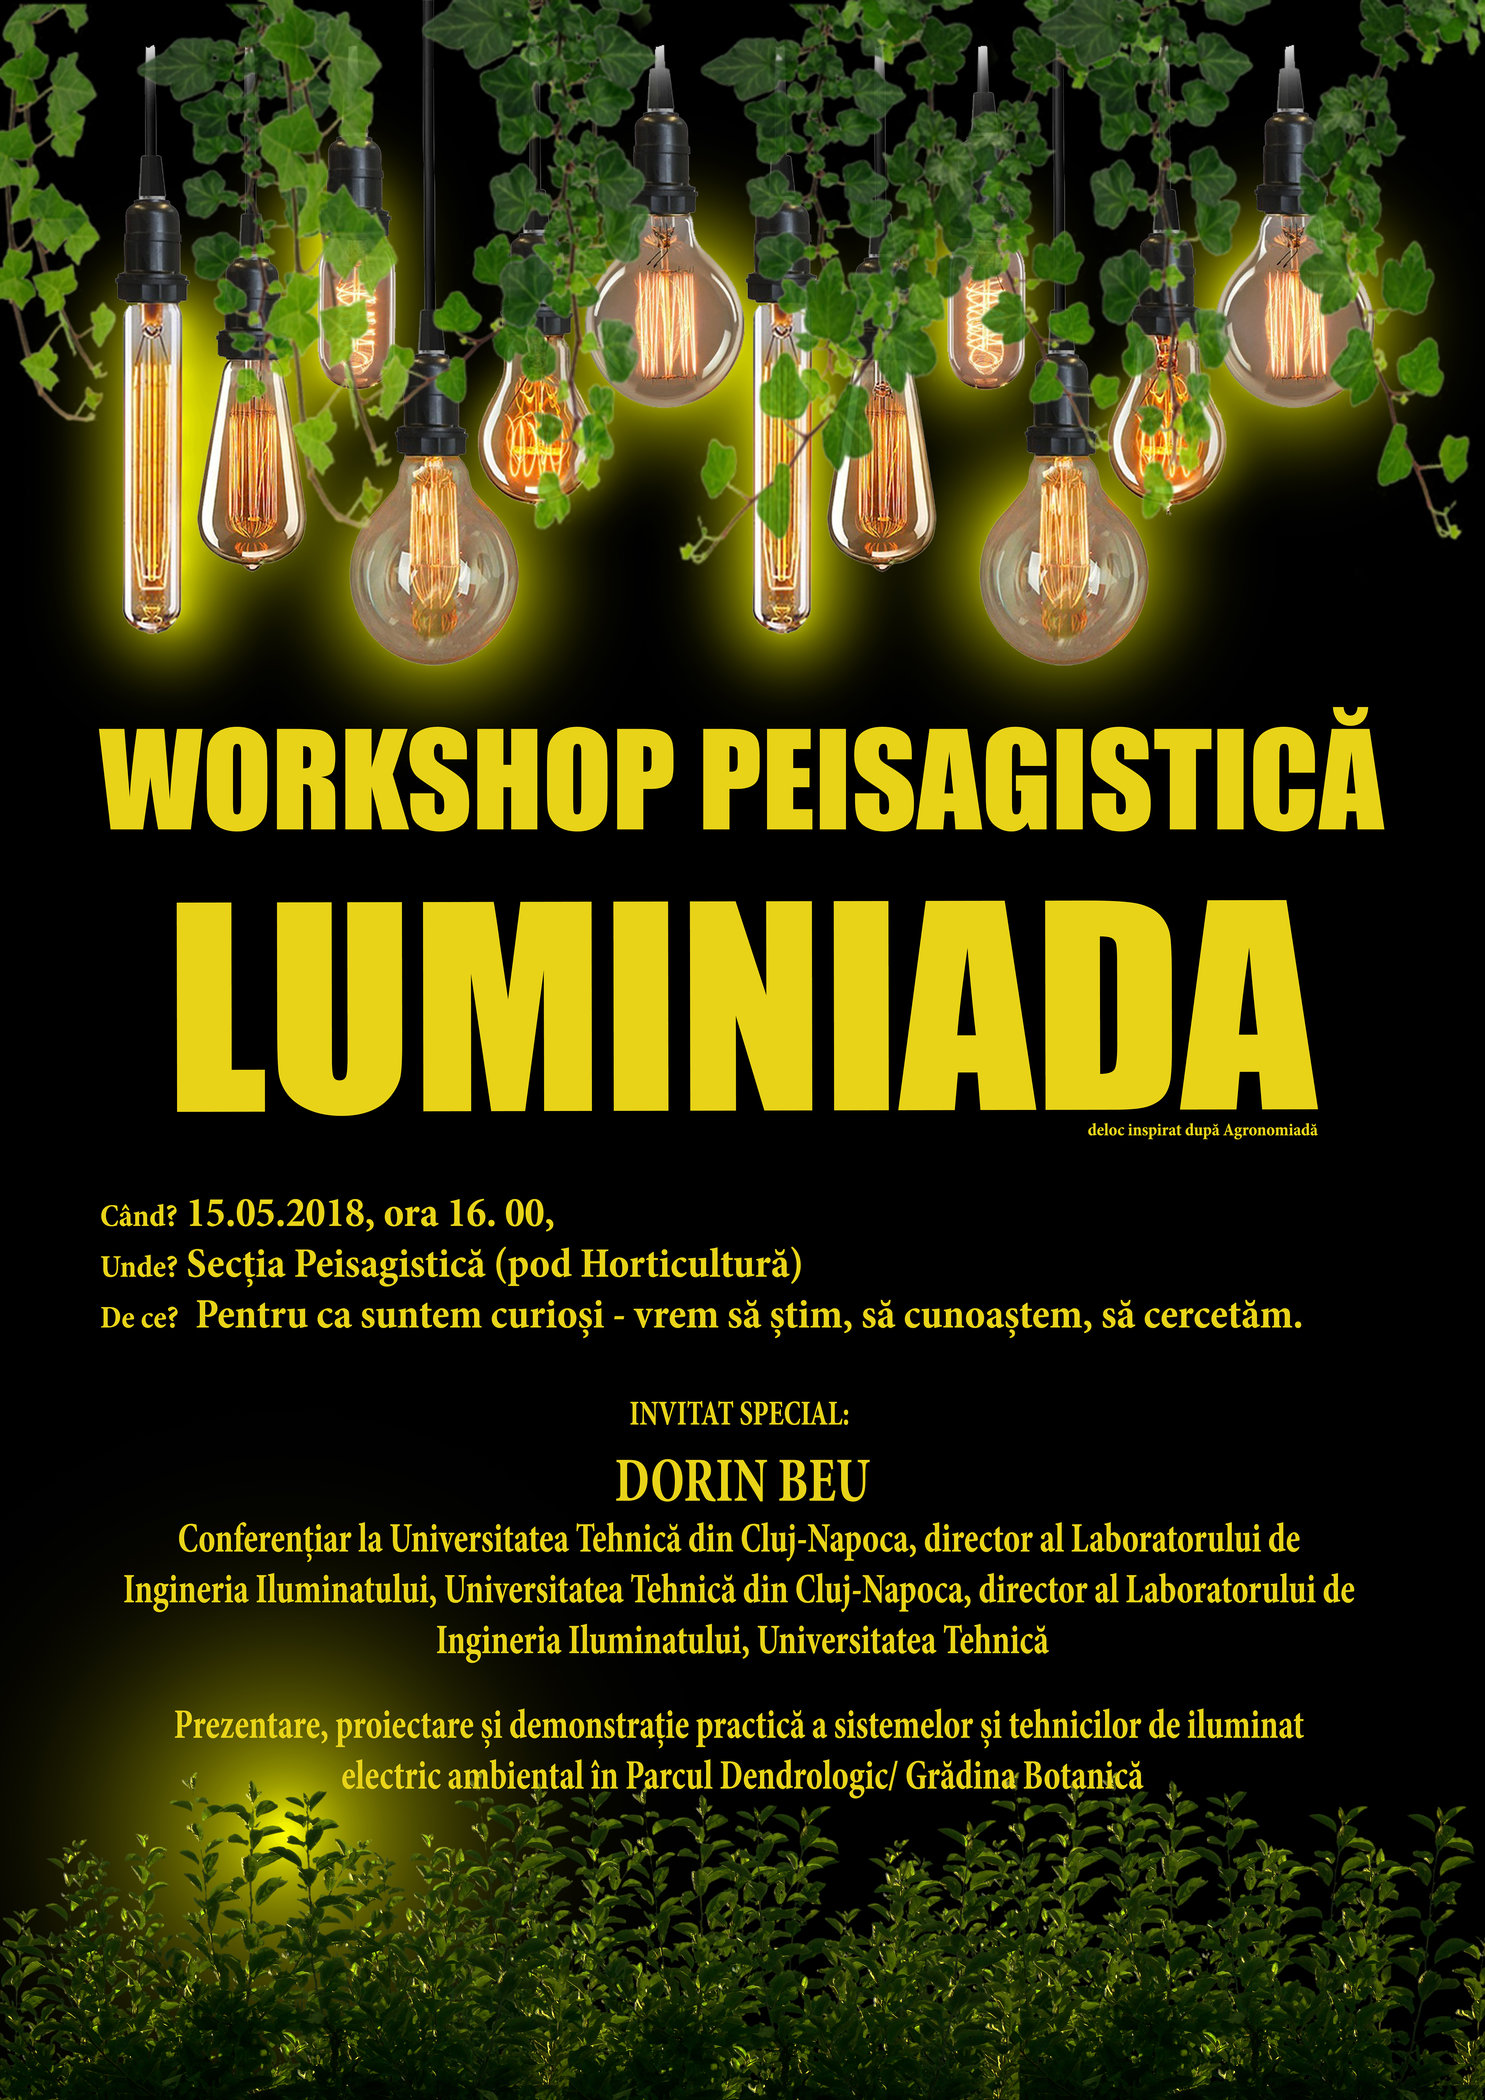 Workshop Peisagistică Luminiada